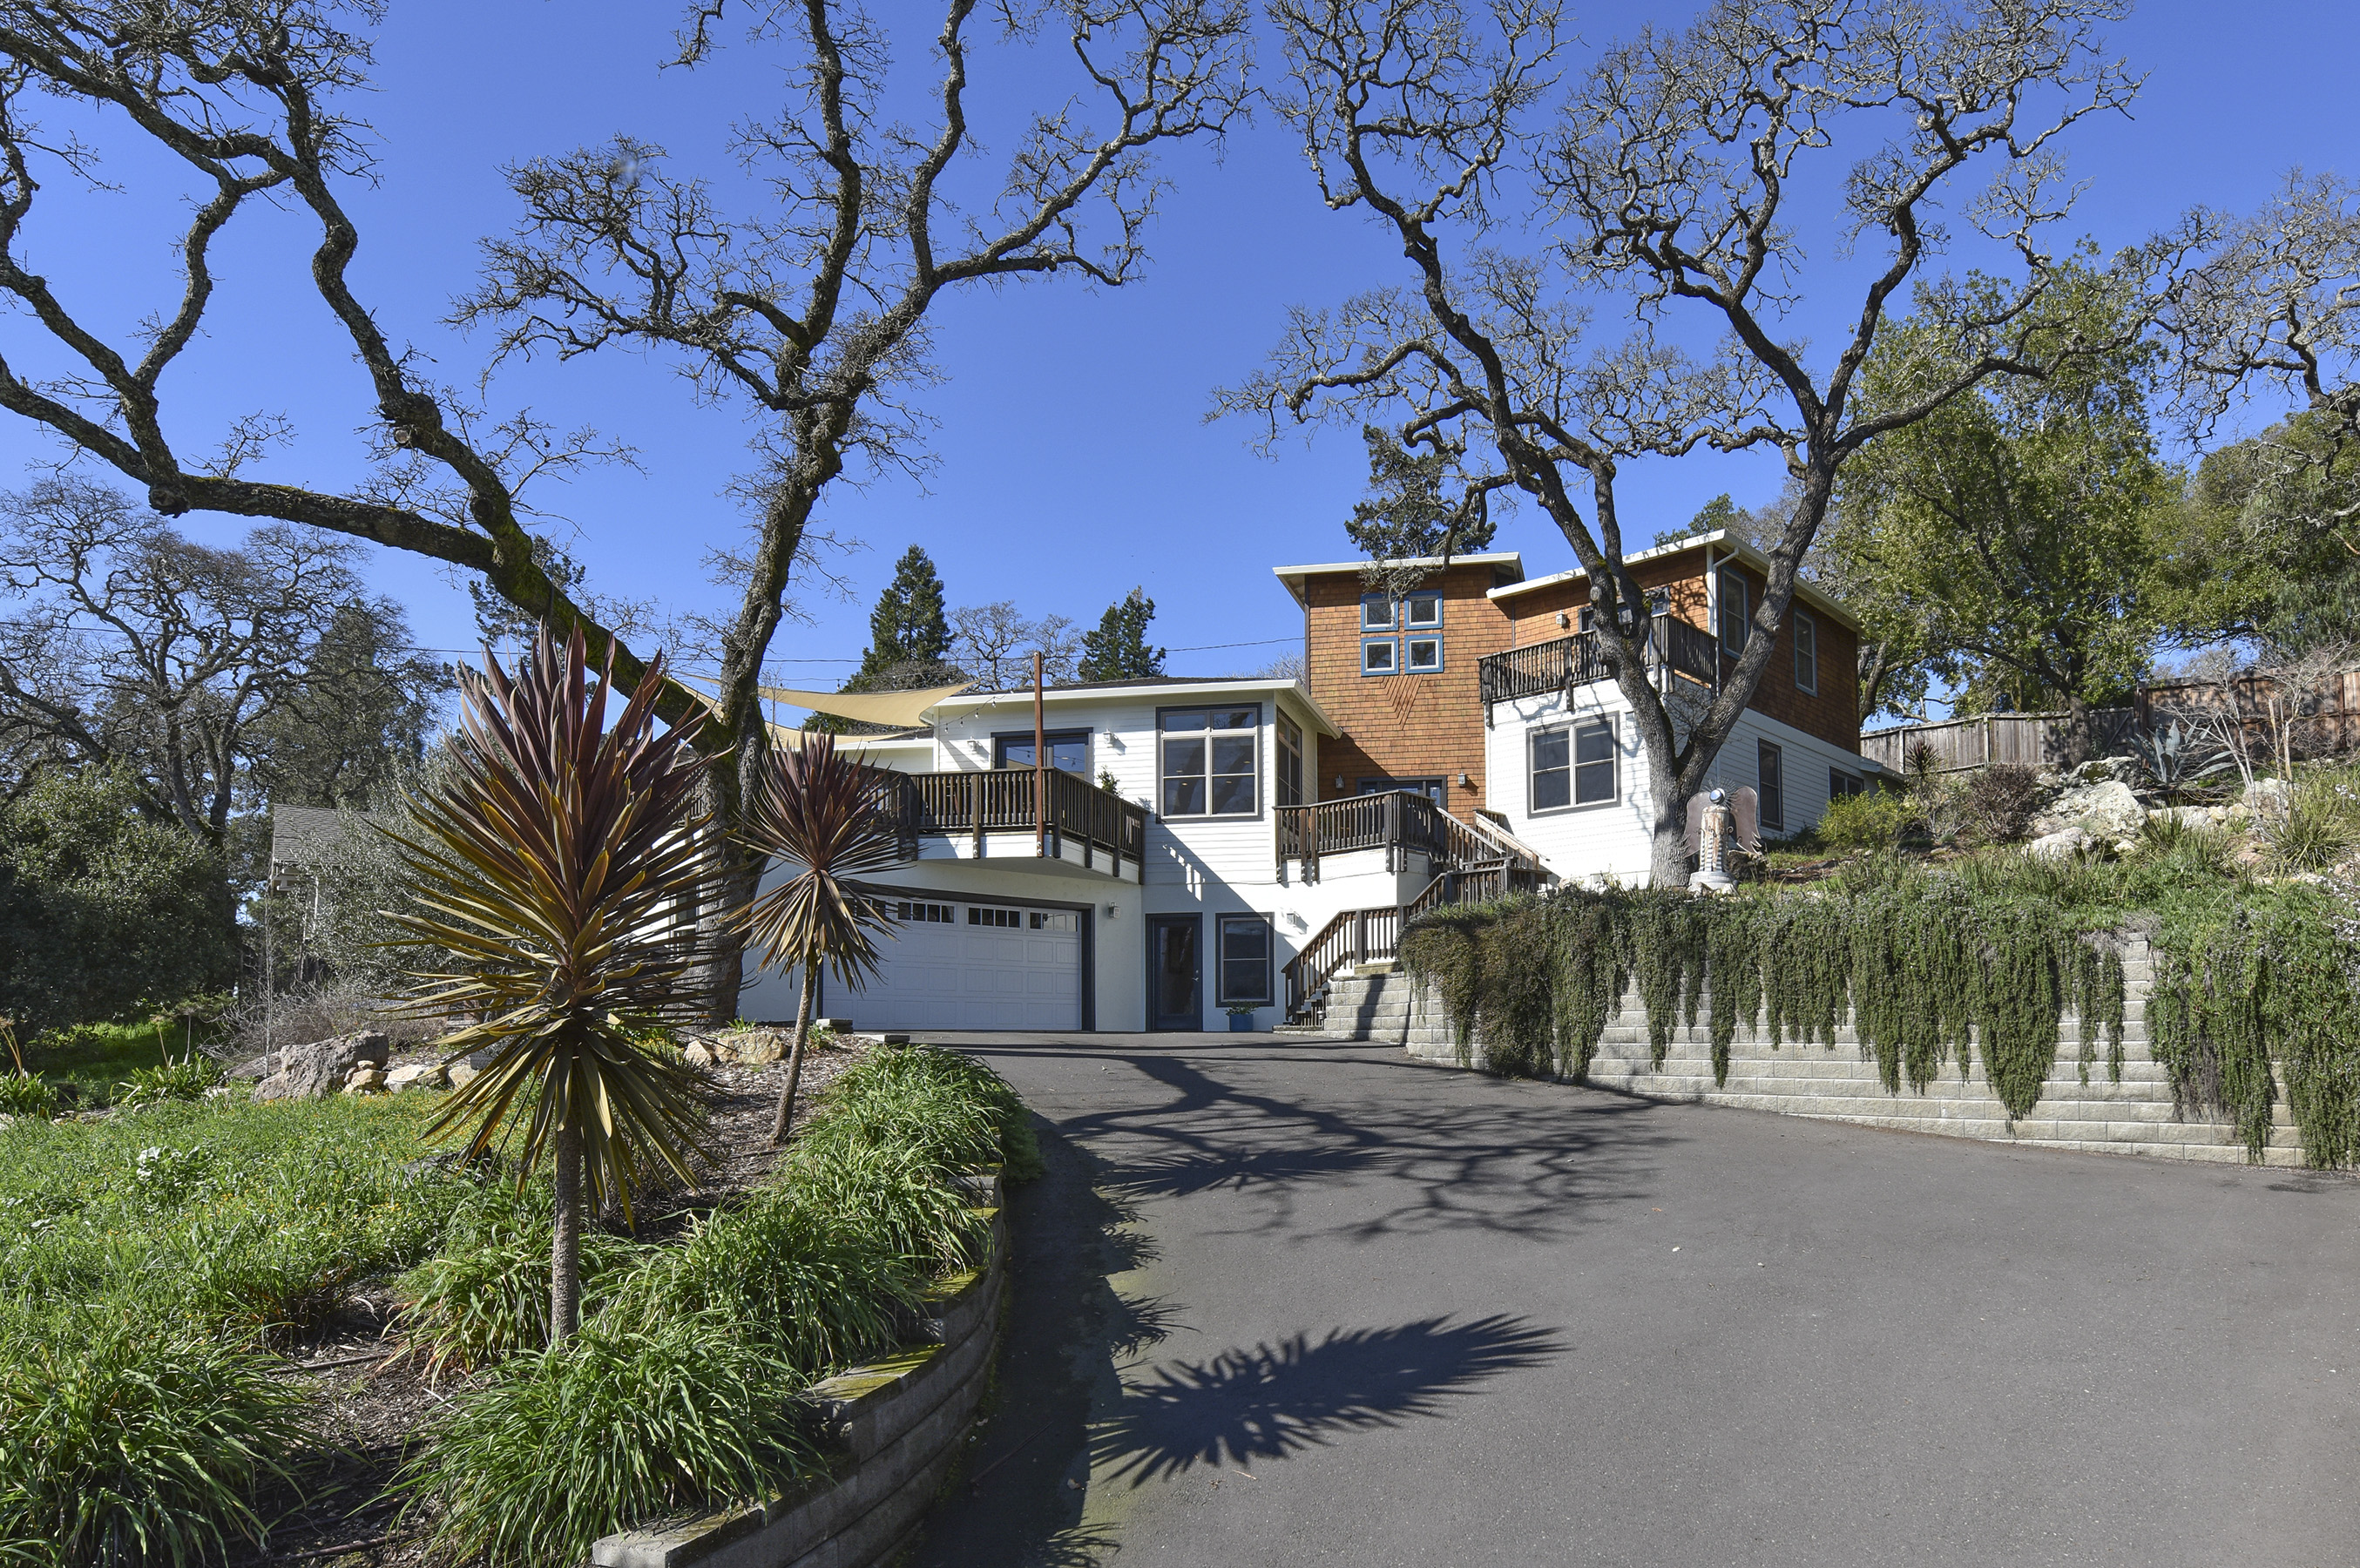 Single Family Home for Sale at Stunning Views in this Custom Contemporary Home! 10 Jacks Lane Napa, California 94558 United States